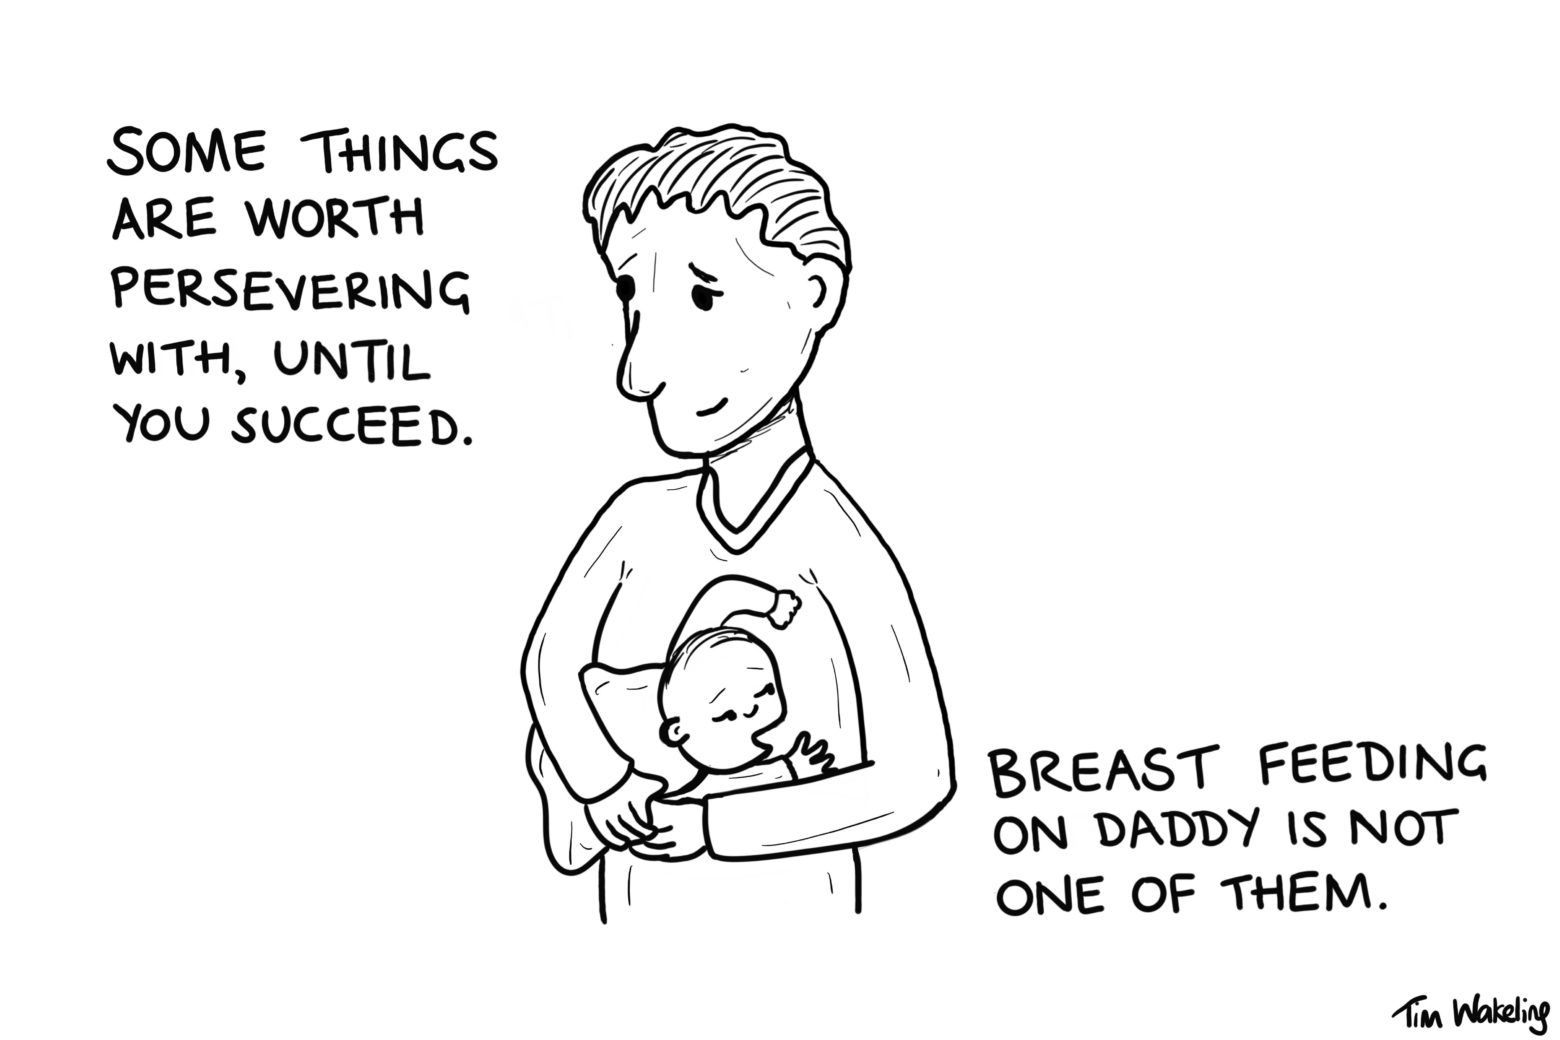 Breastfeeding on Daddy